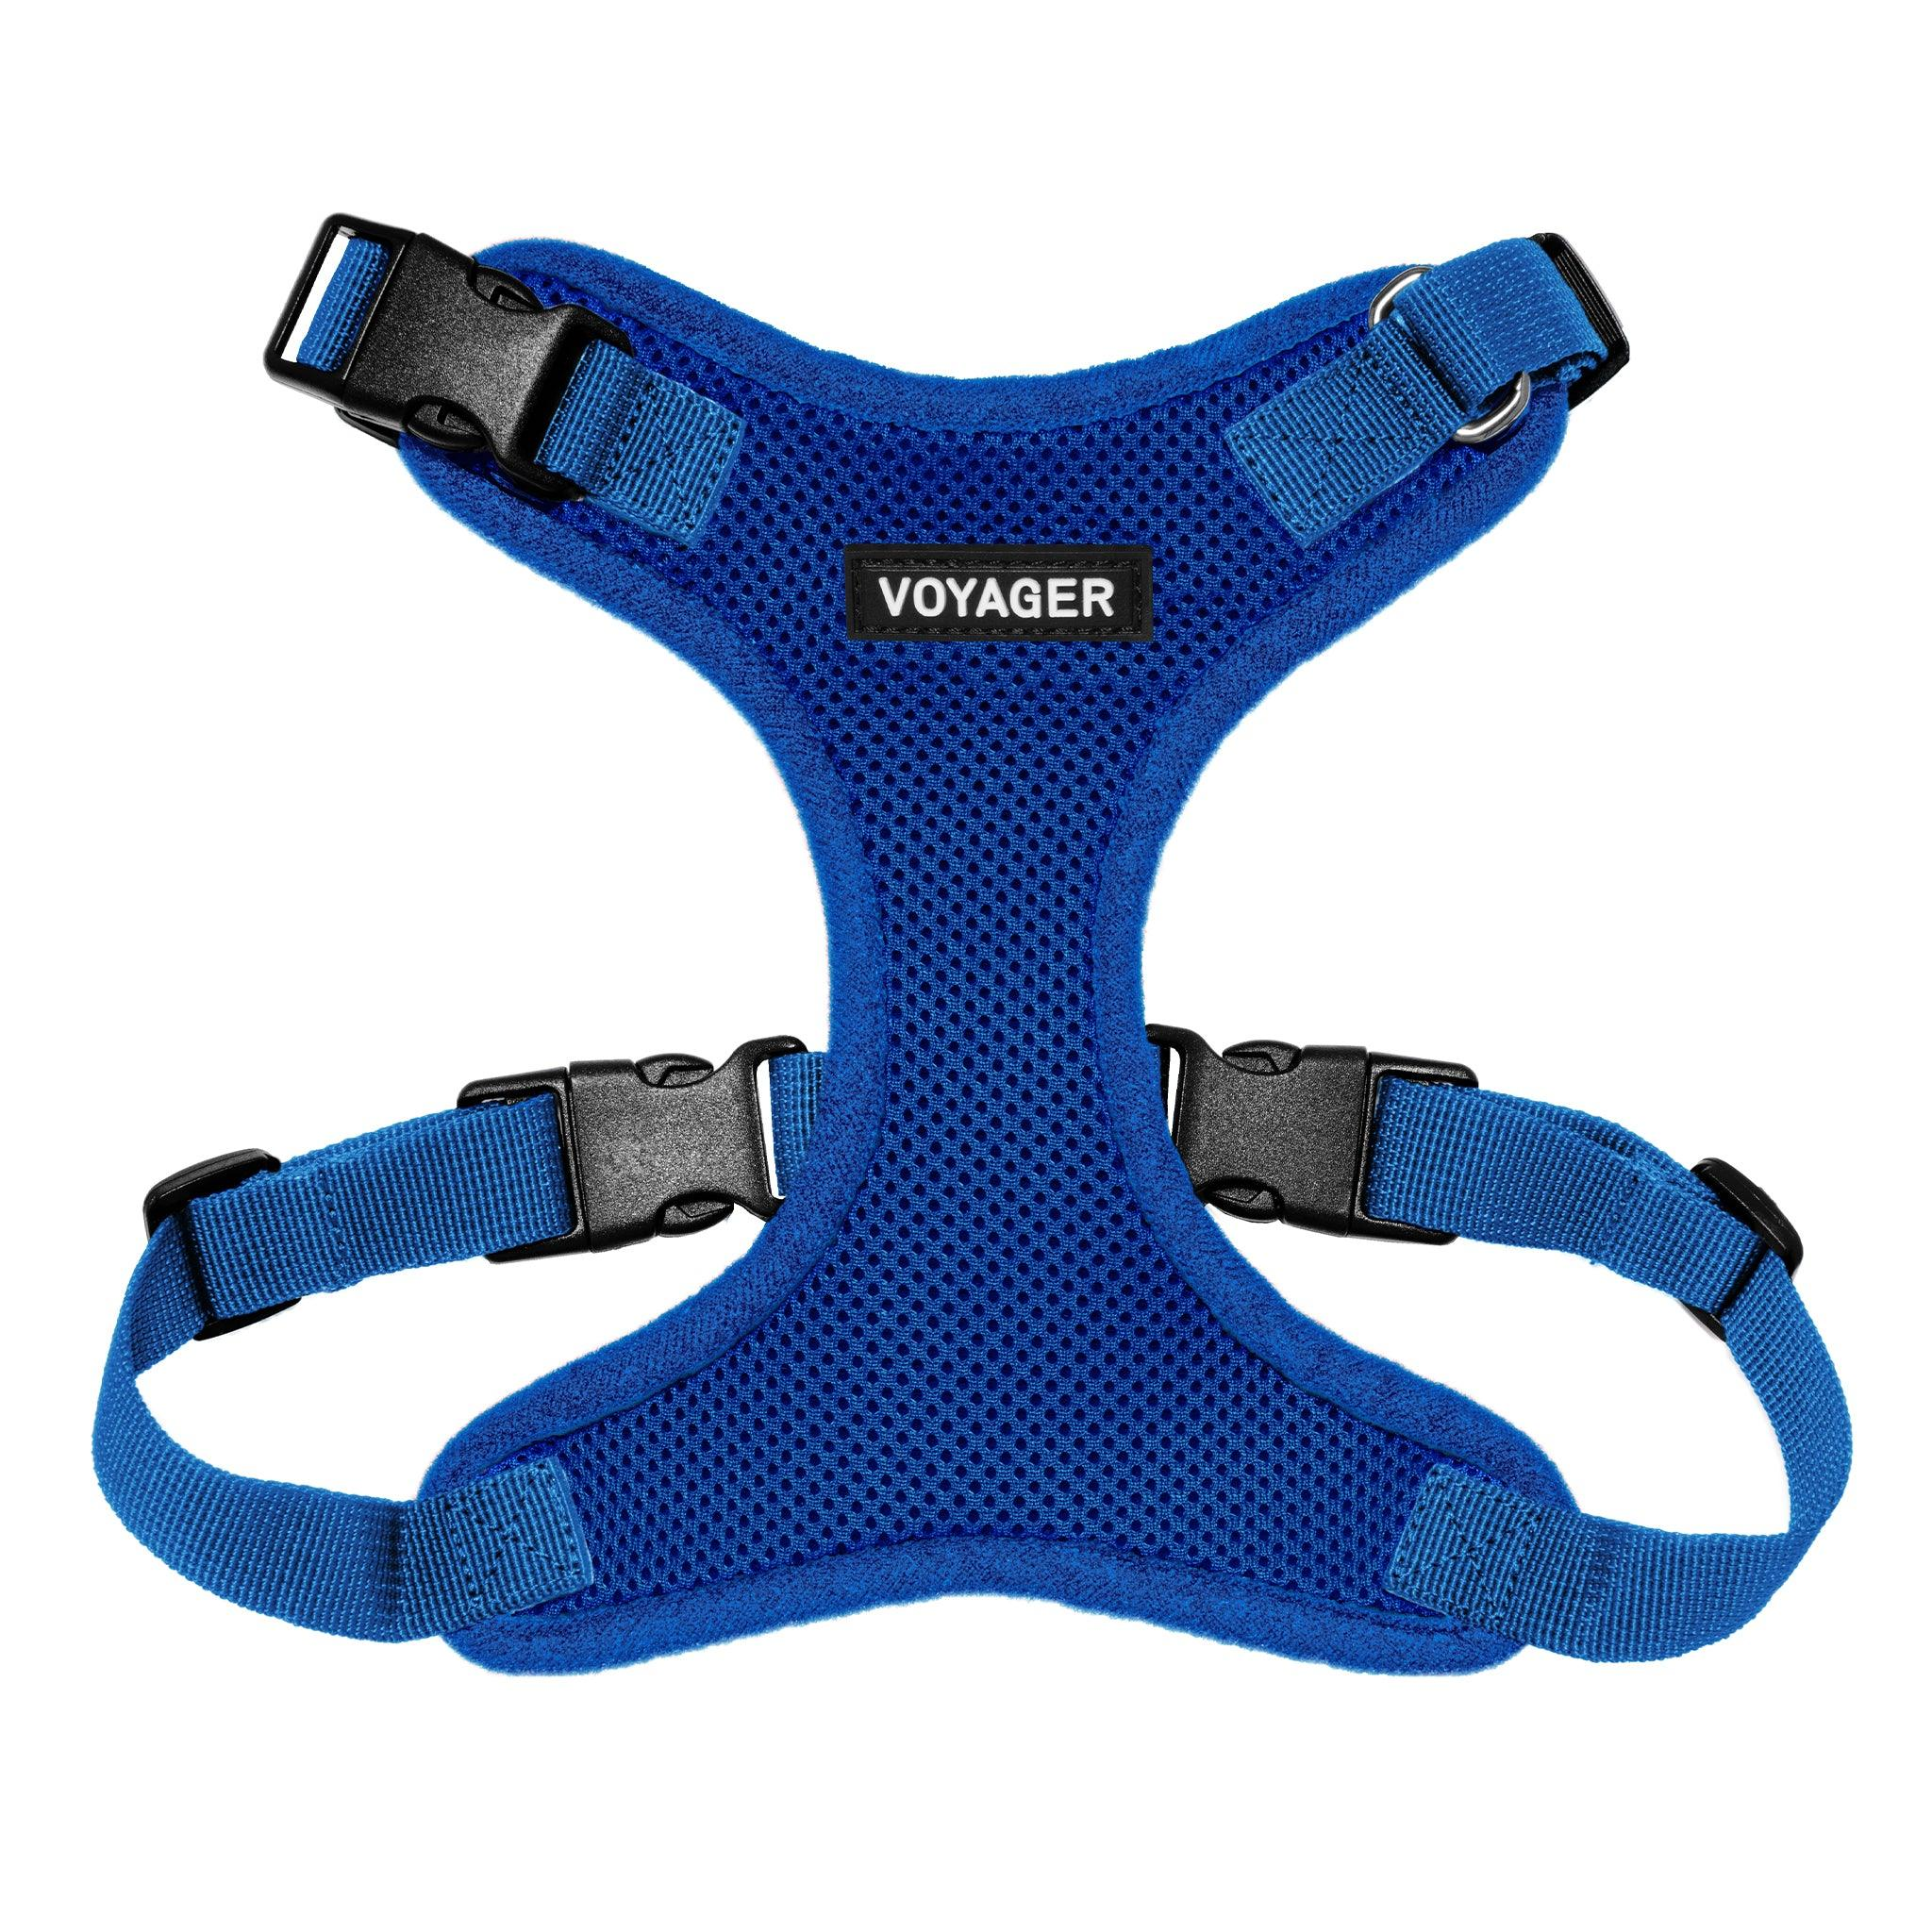 VOYAGER Step-In Lock Dog Harness in Royal Blue with Matching Trim and Webbing - Front